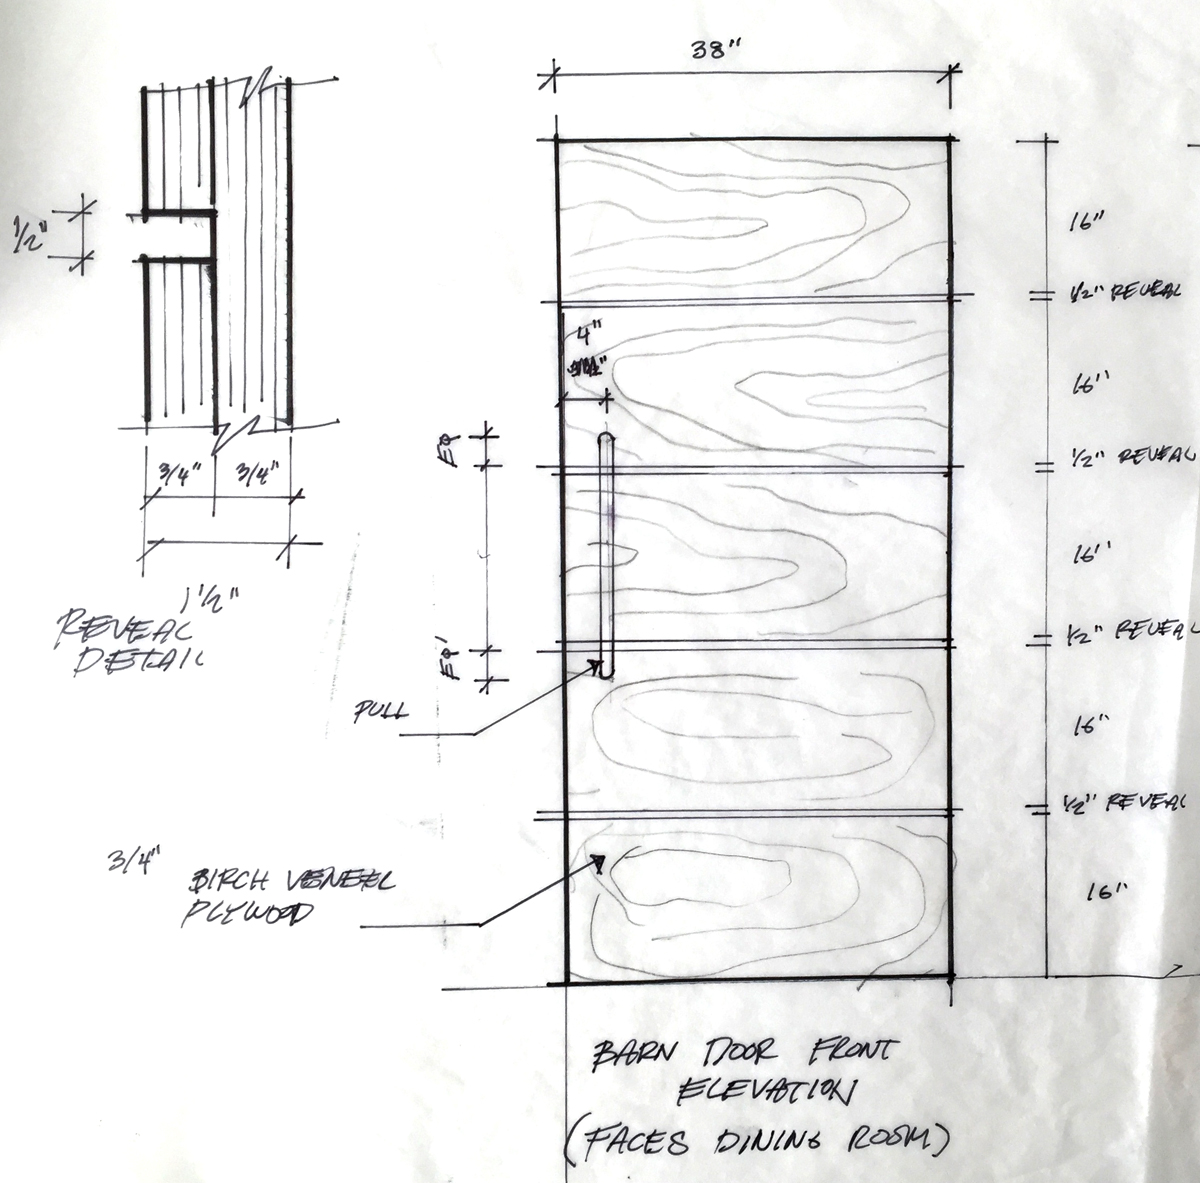 Front elevation and detail sketch of barn door.